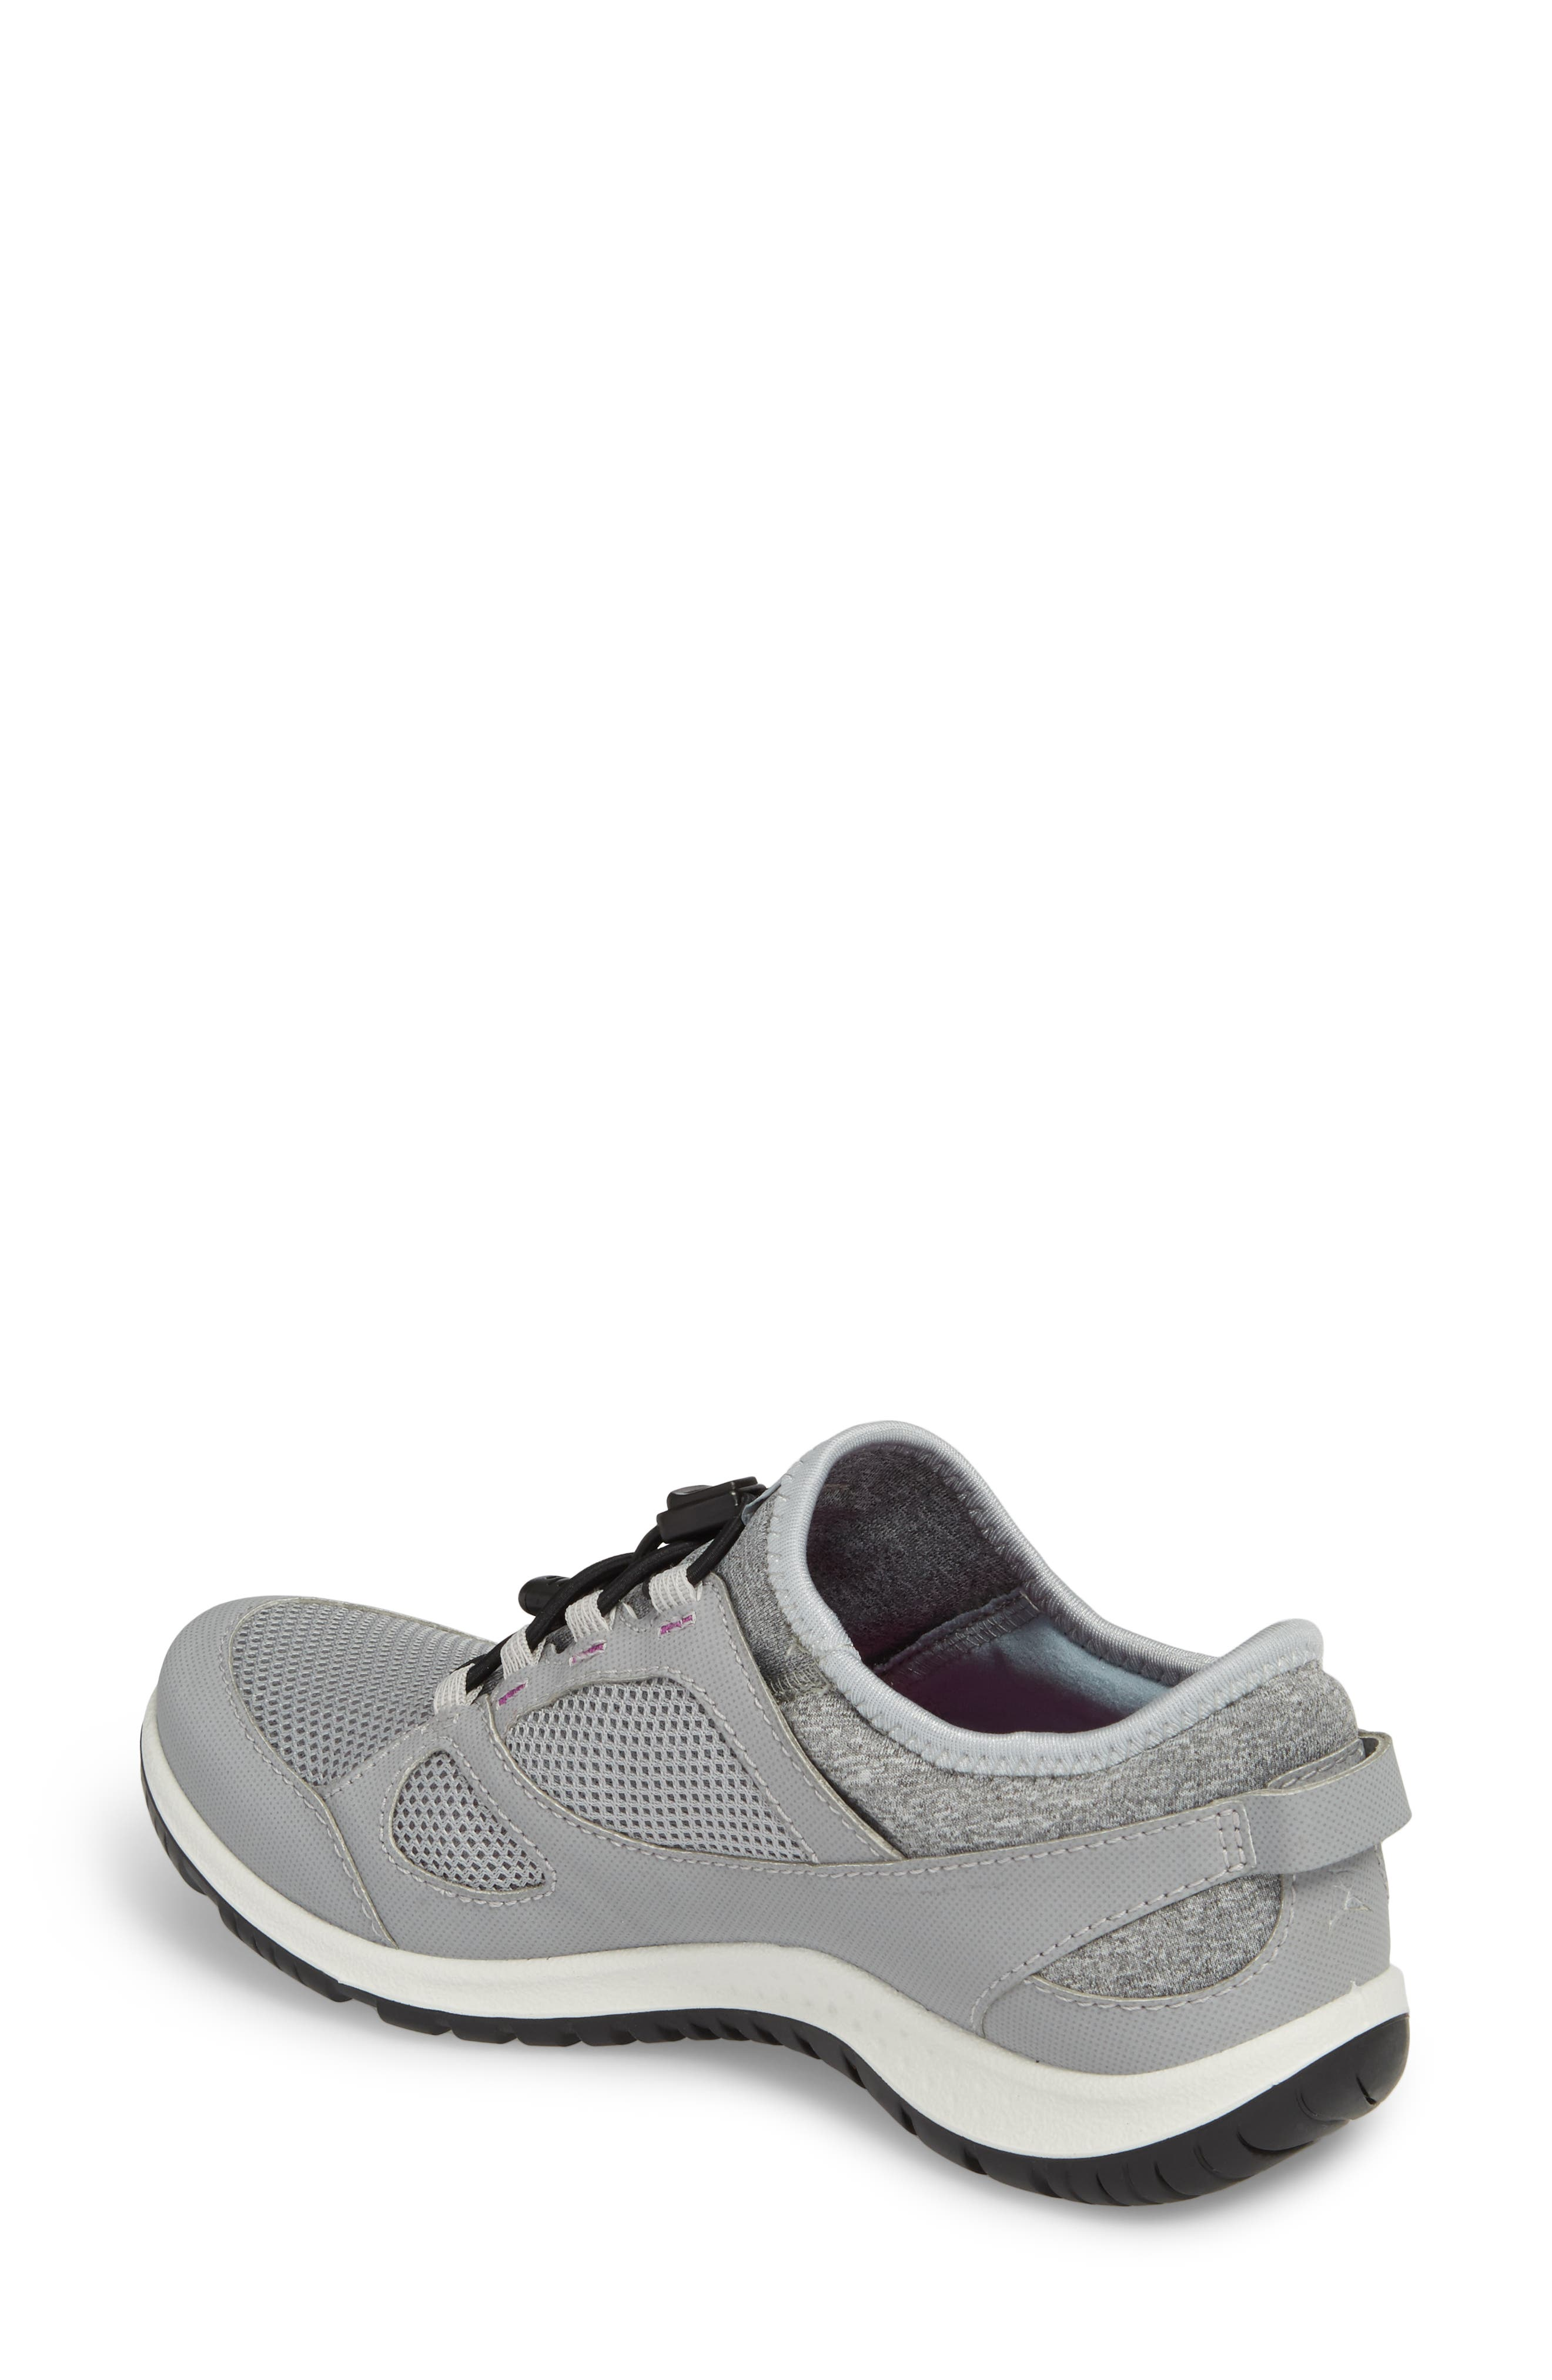 Aspina Toggle Hiking Sneaker,                             Alternate thumbnail 2, color,                             Silver Grey Leather